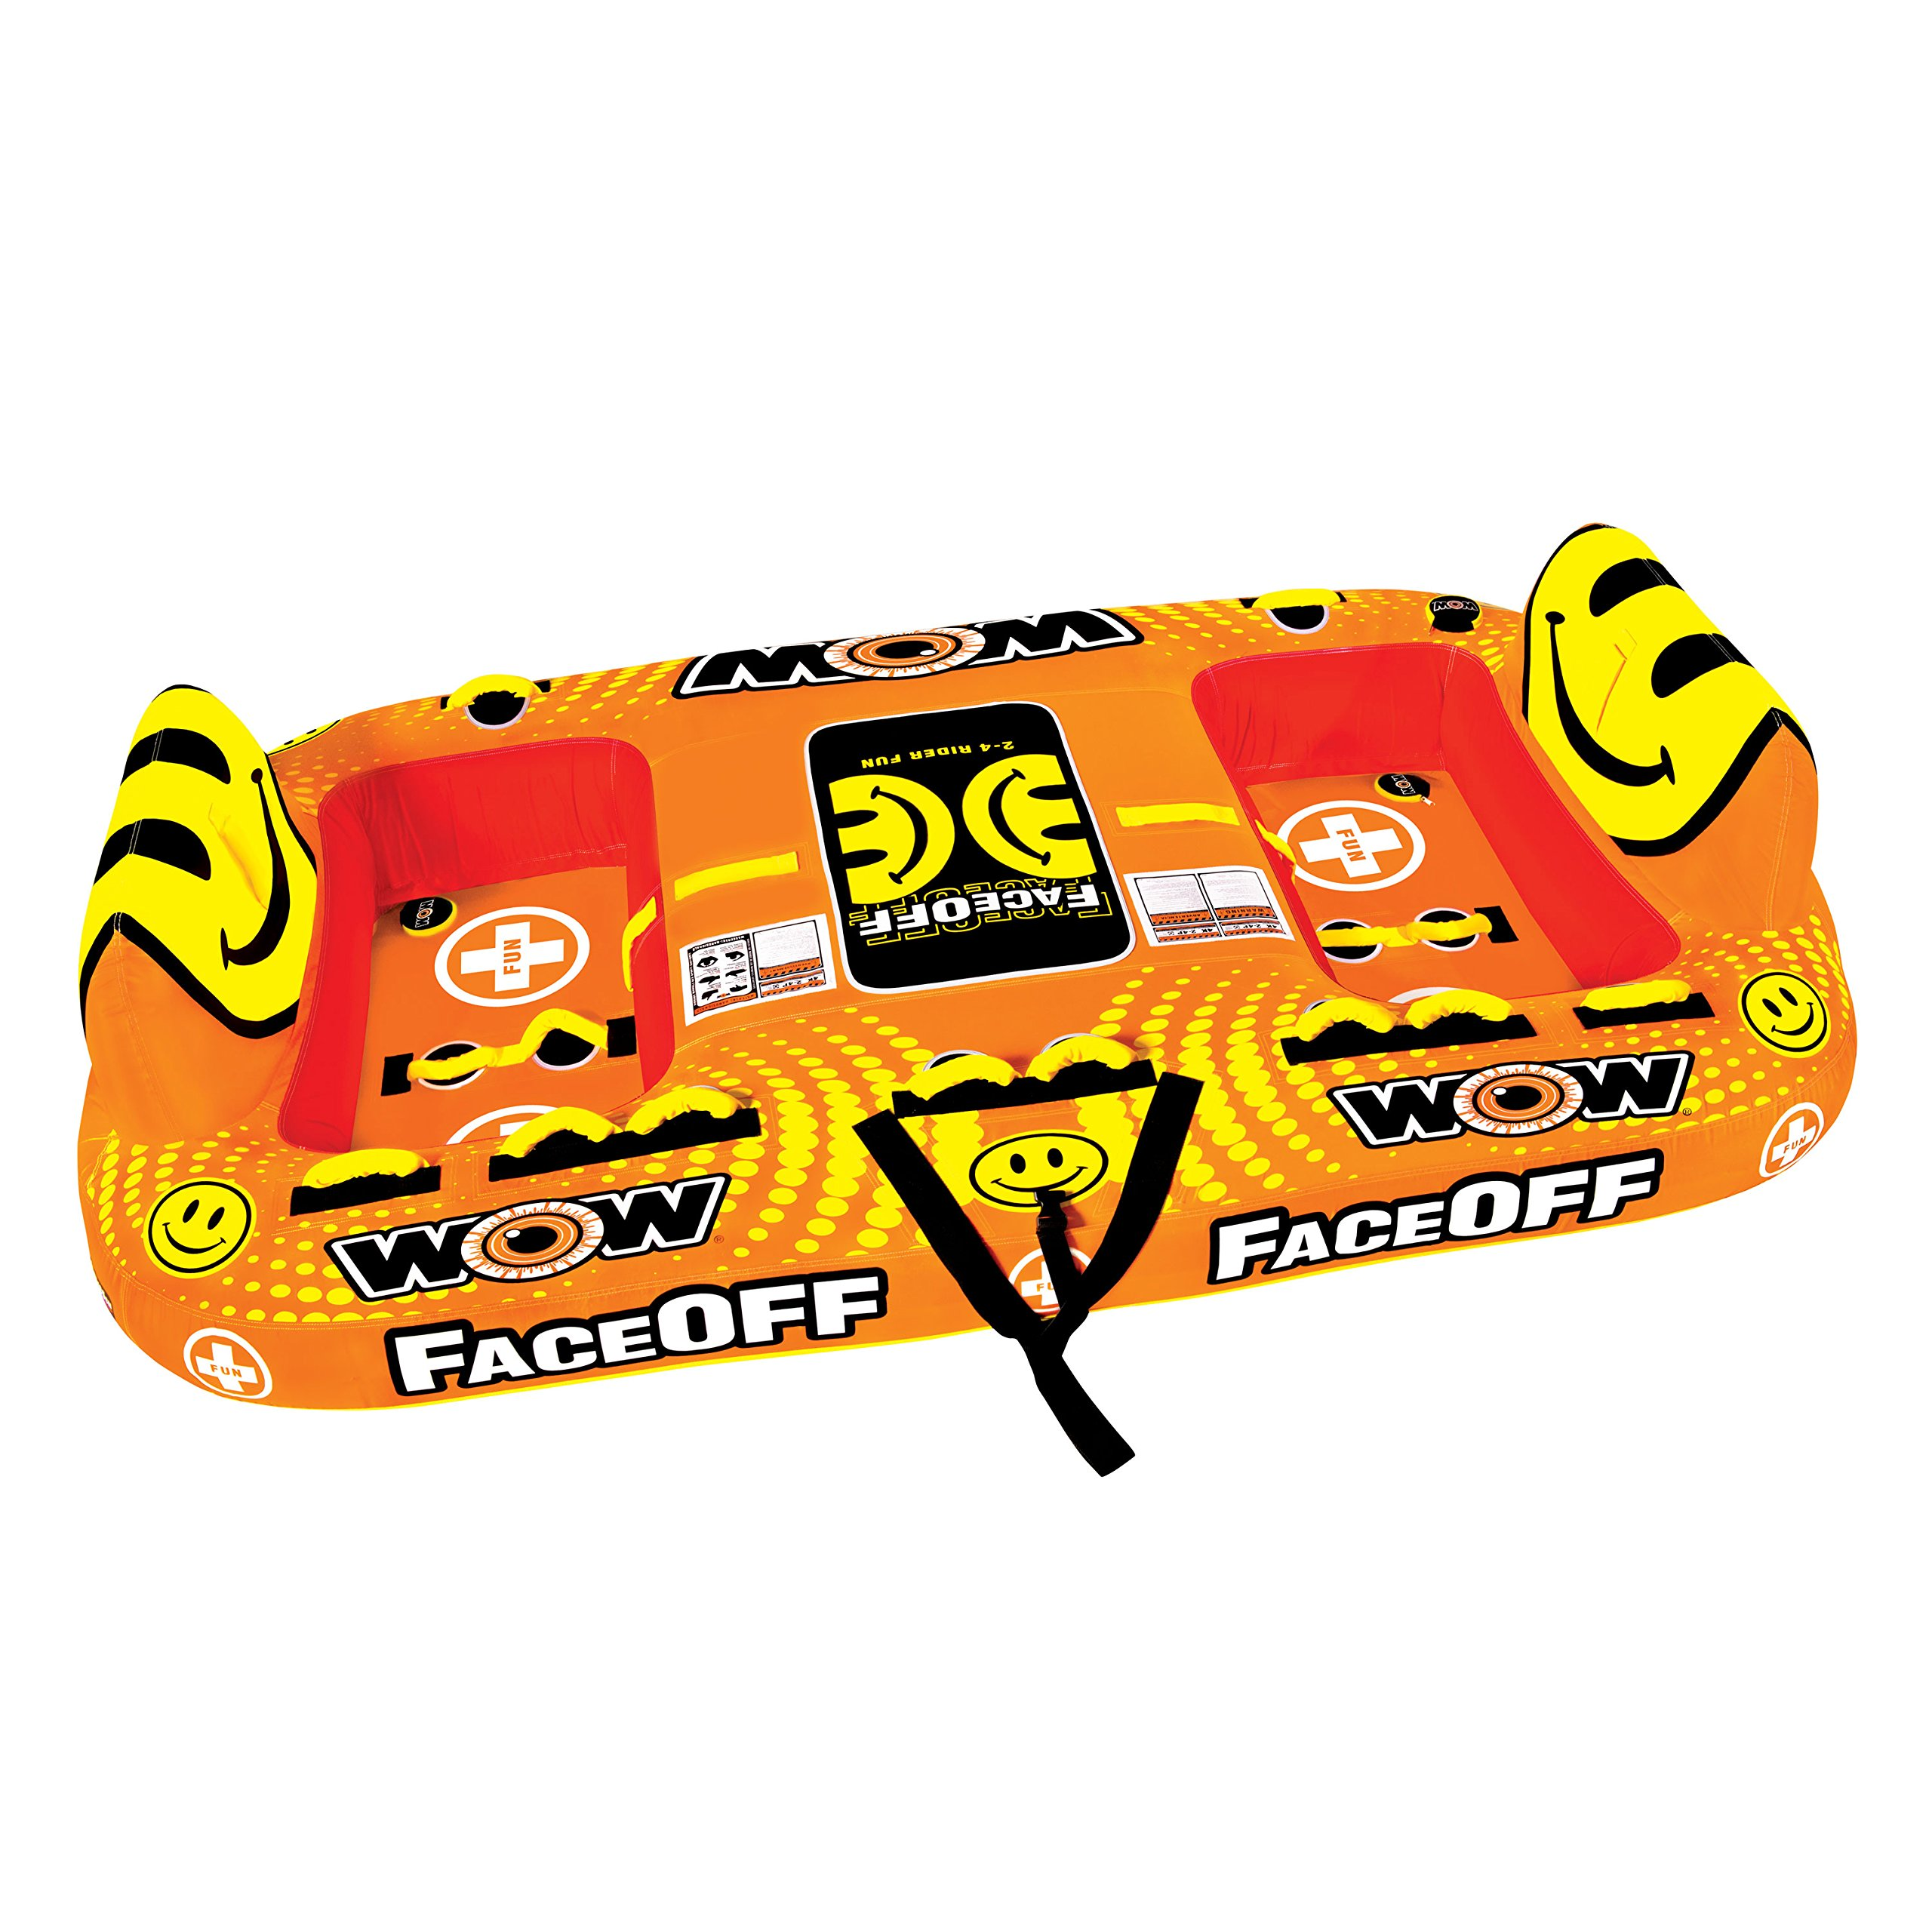 WOW World of Watersports, 15-1050, Face-Off Towable, Ride Face to Face, 1 to 4 Person by WOW Sports